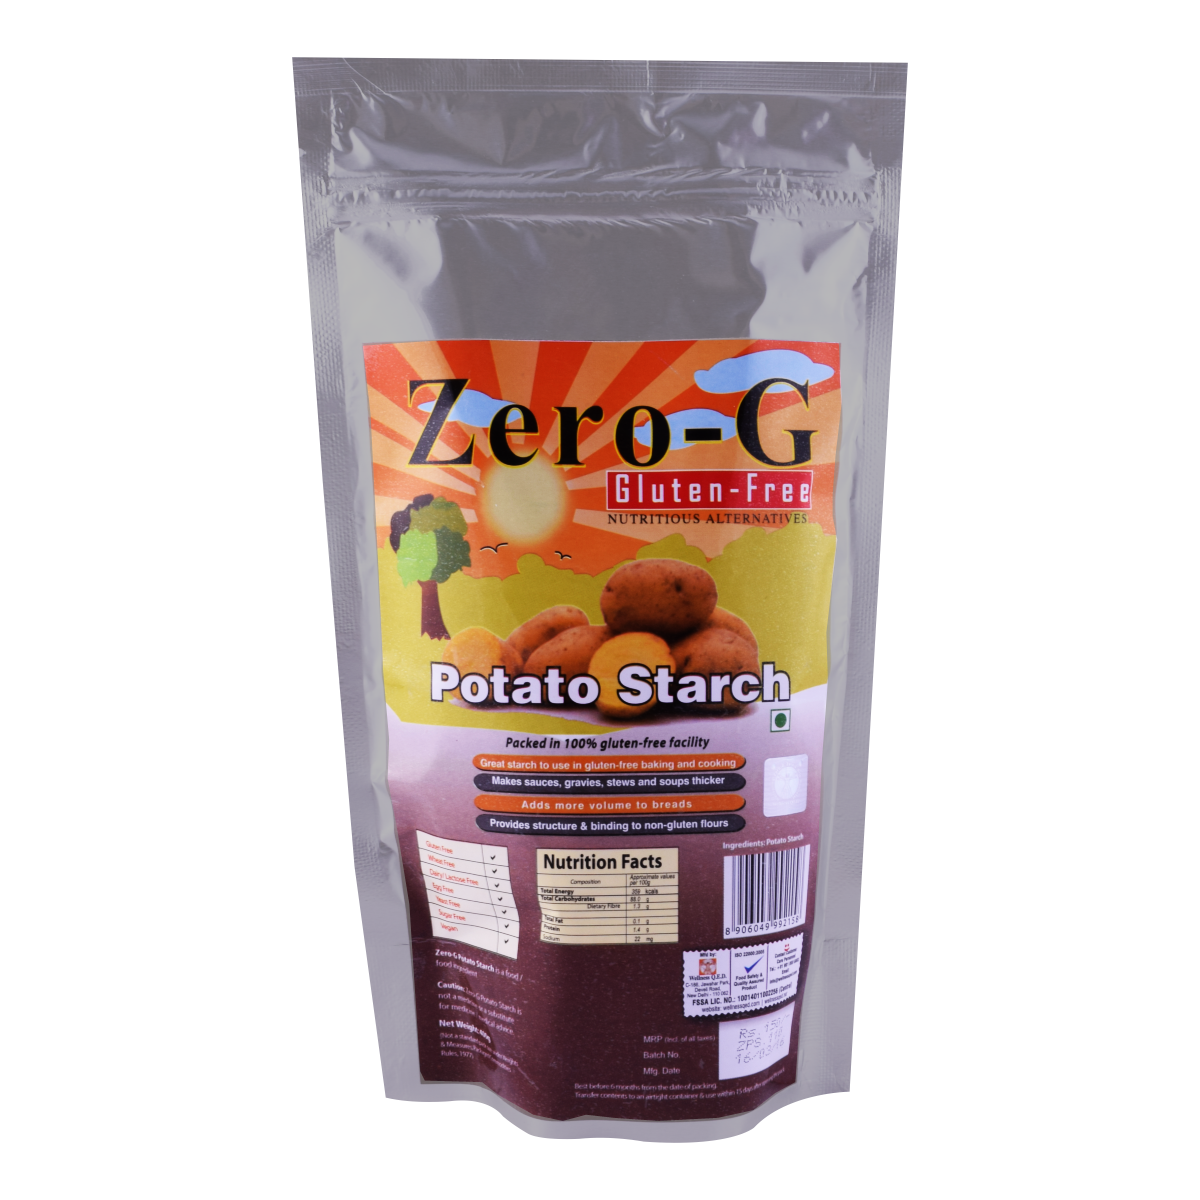 Zero-G Potato Starch